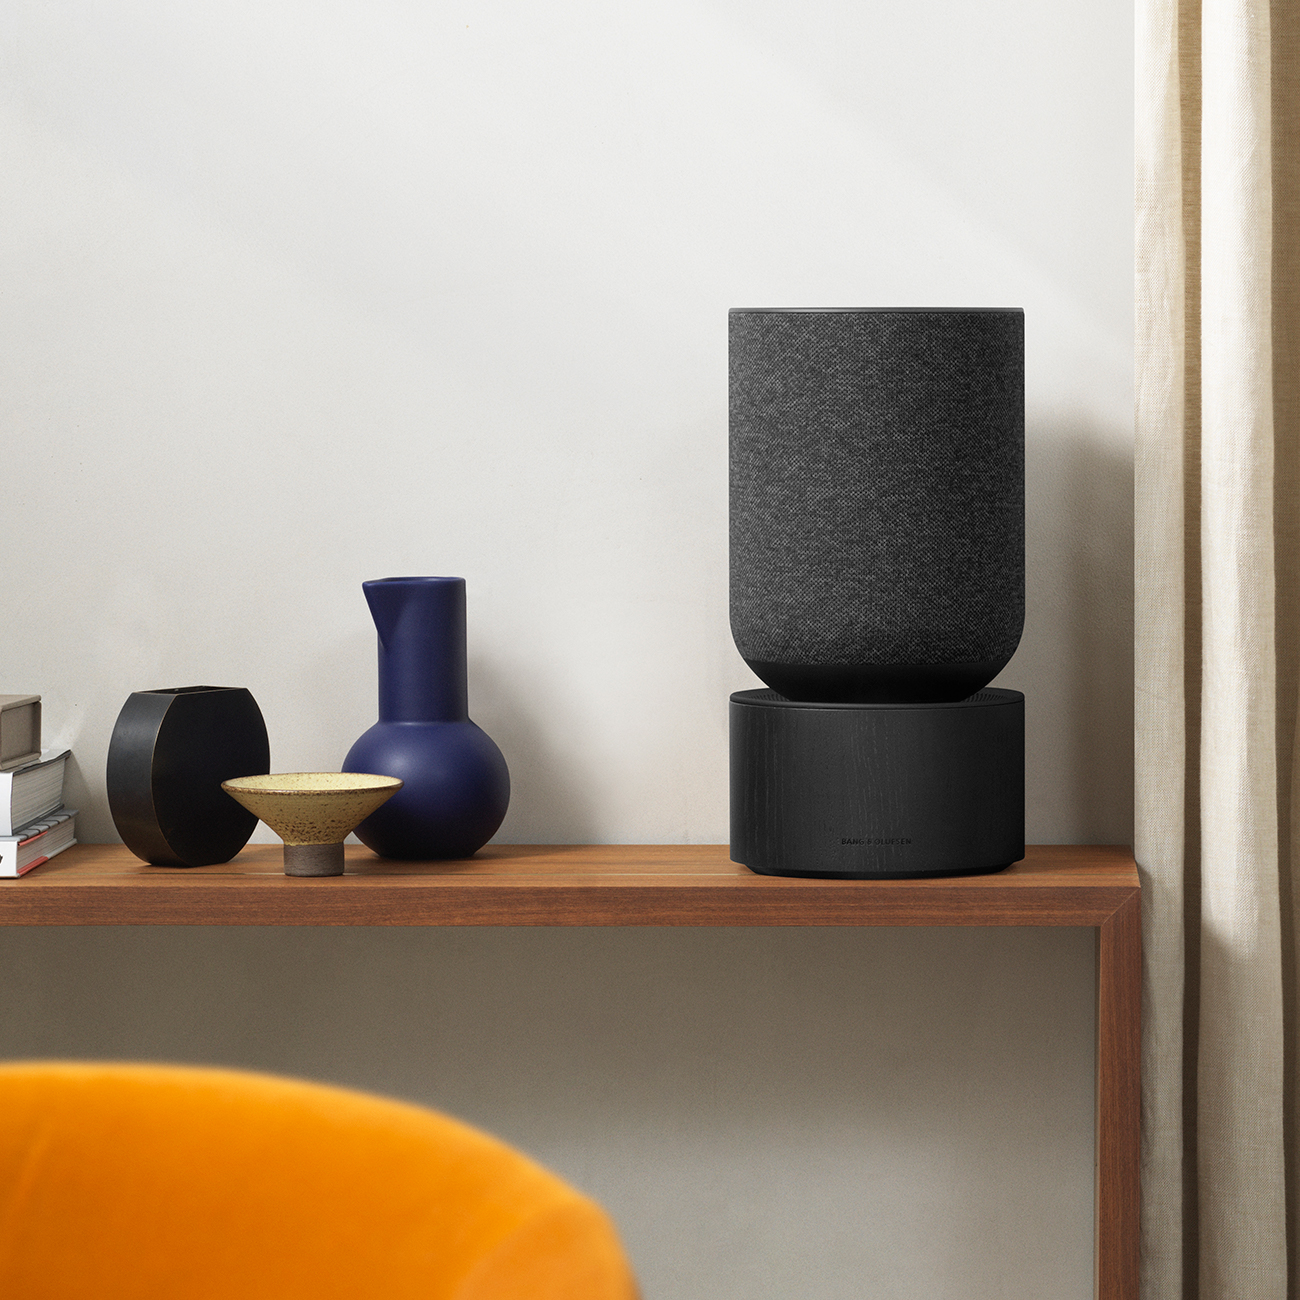 Beosound Balance black in interior setting